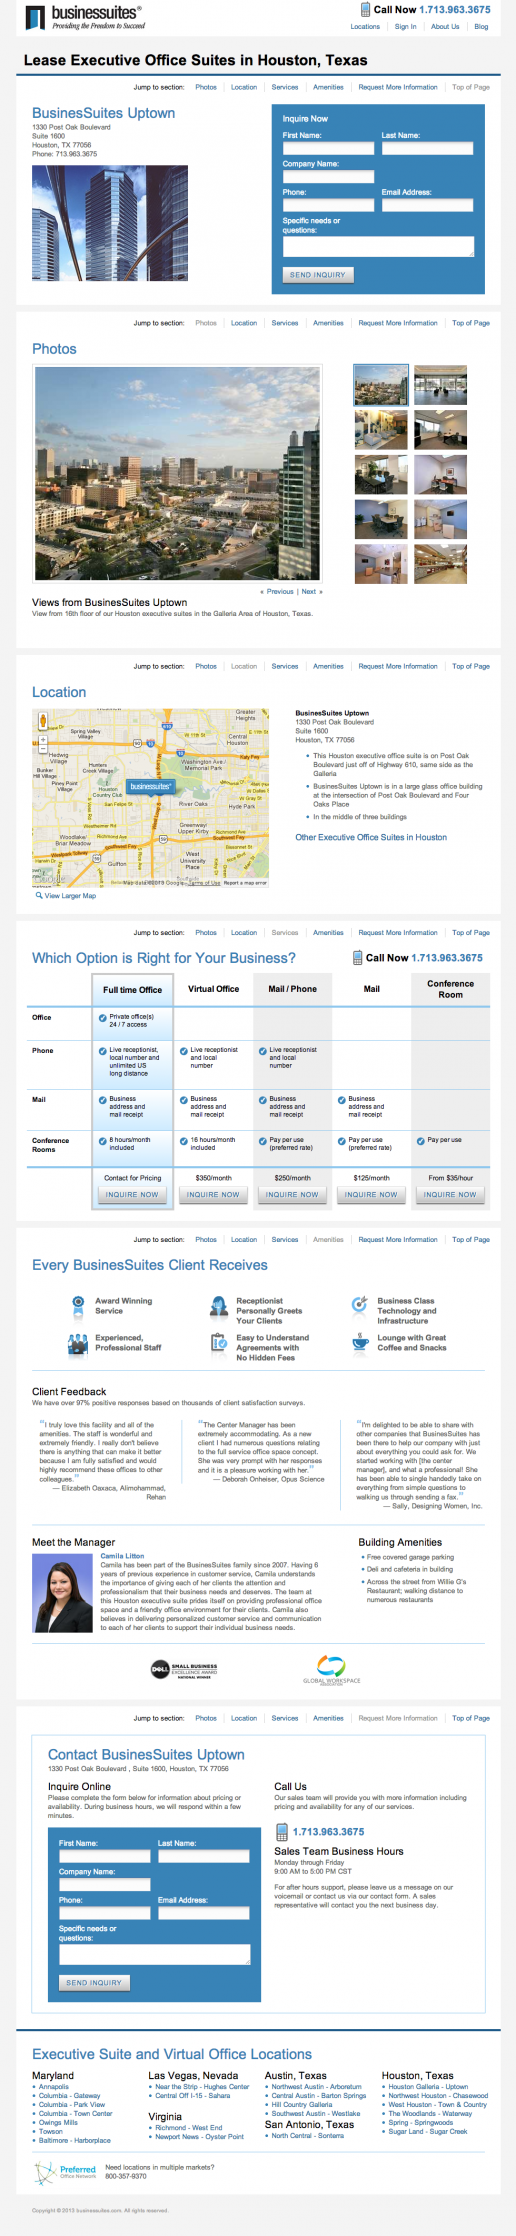 BusinesSuites Property Detail Page – example 1